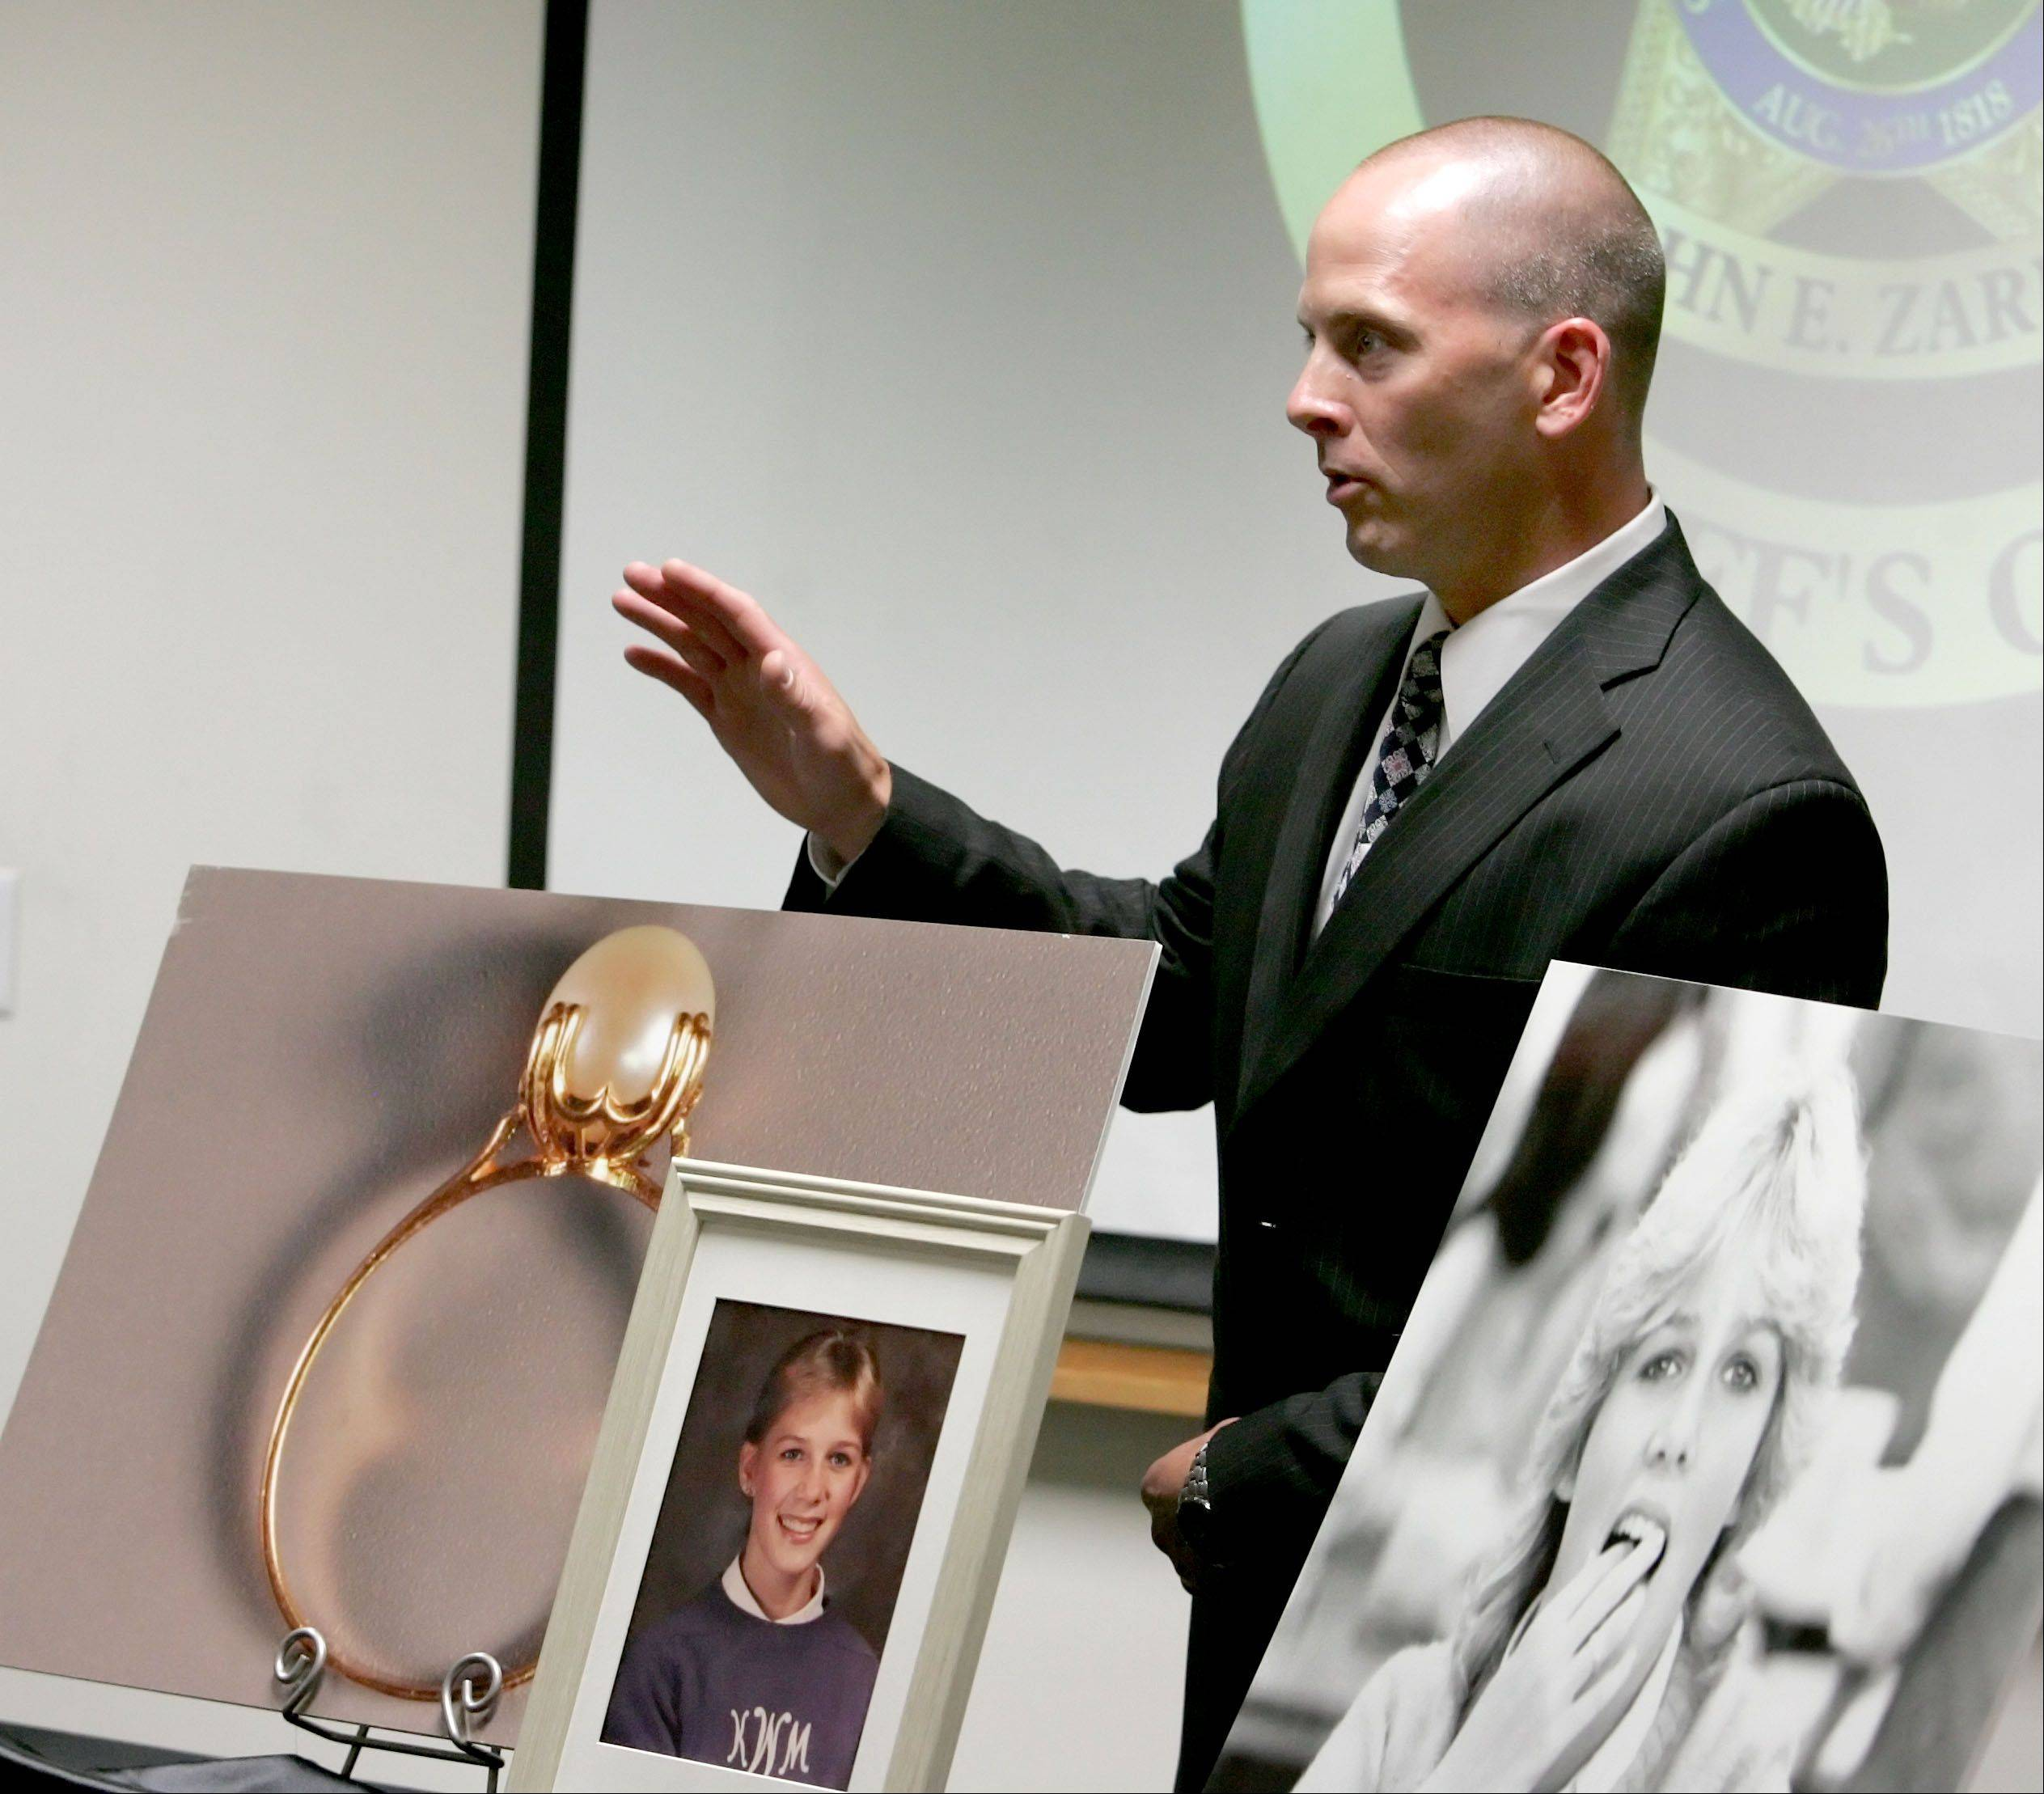 Sgt. Bob Harris reveals a photo of a ring during news conference at the DuPage County sheriff's office in Wheaton on Thursday. Kristy Wesselman was wearing a similar ring when she was murdered on July 21, 1985, near Glen Ellyn.